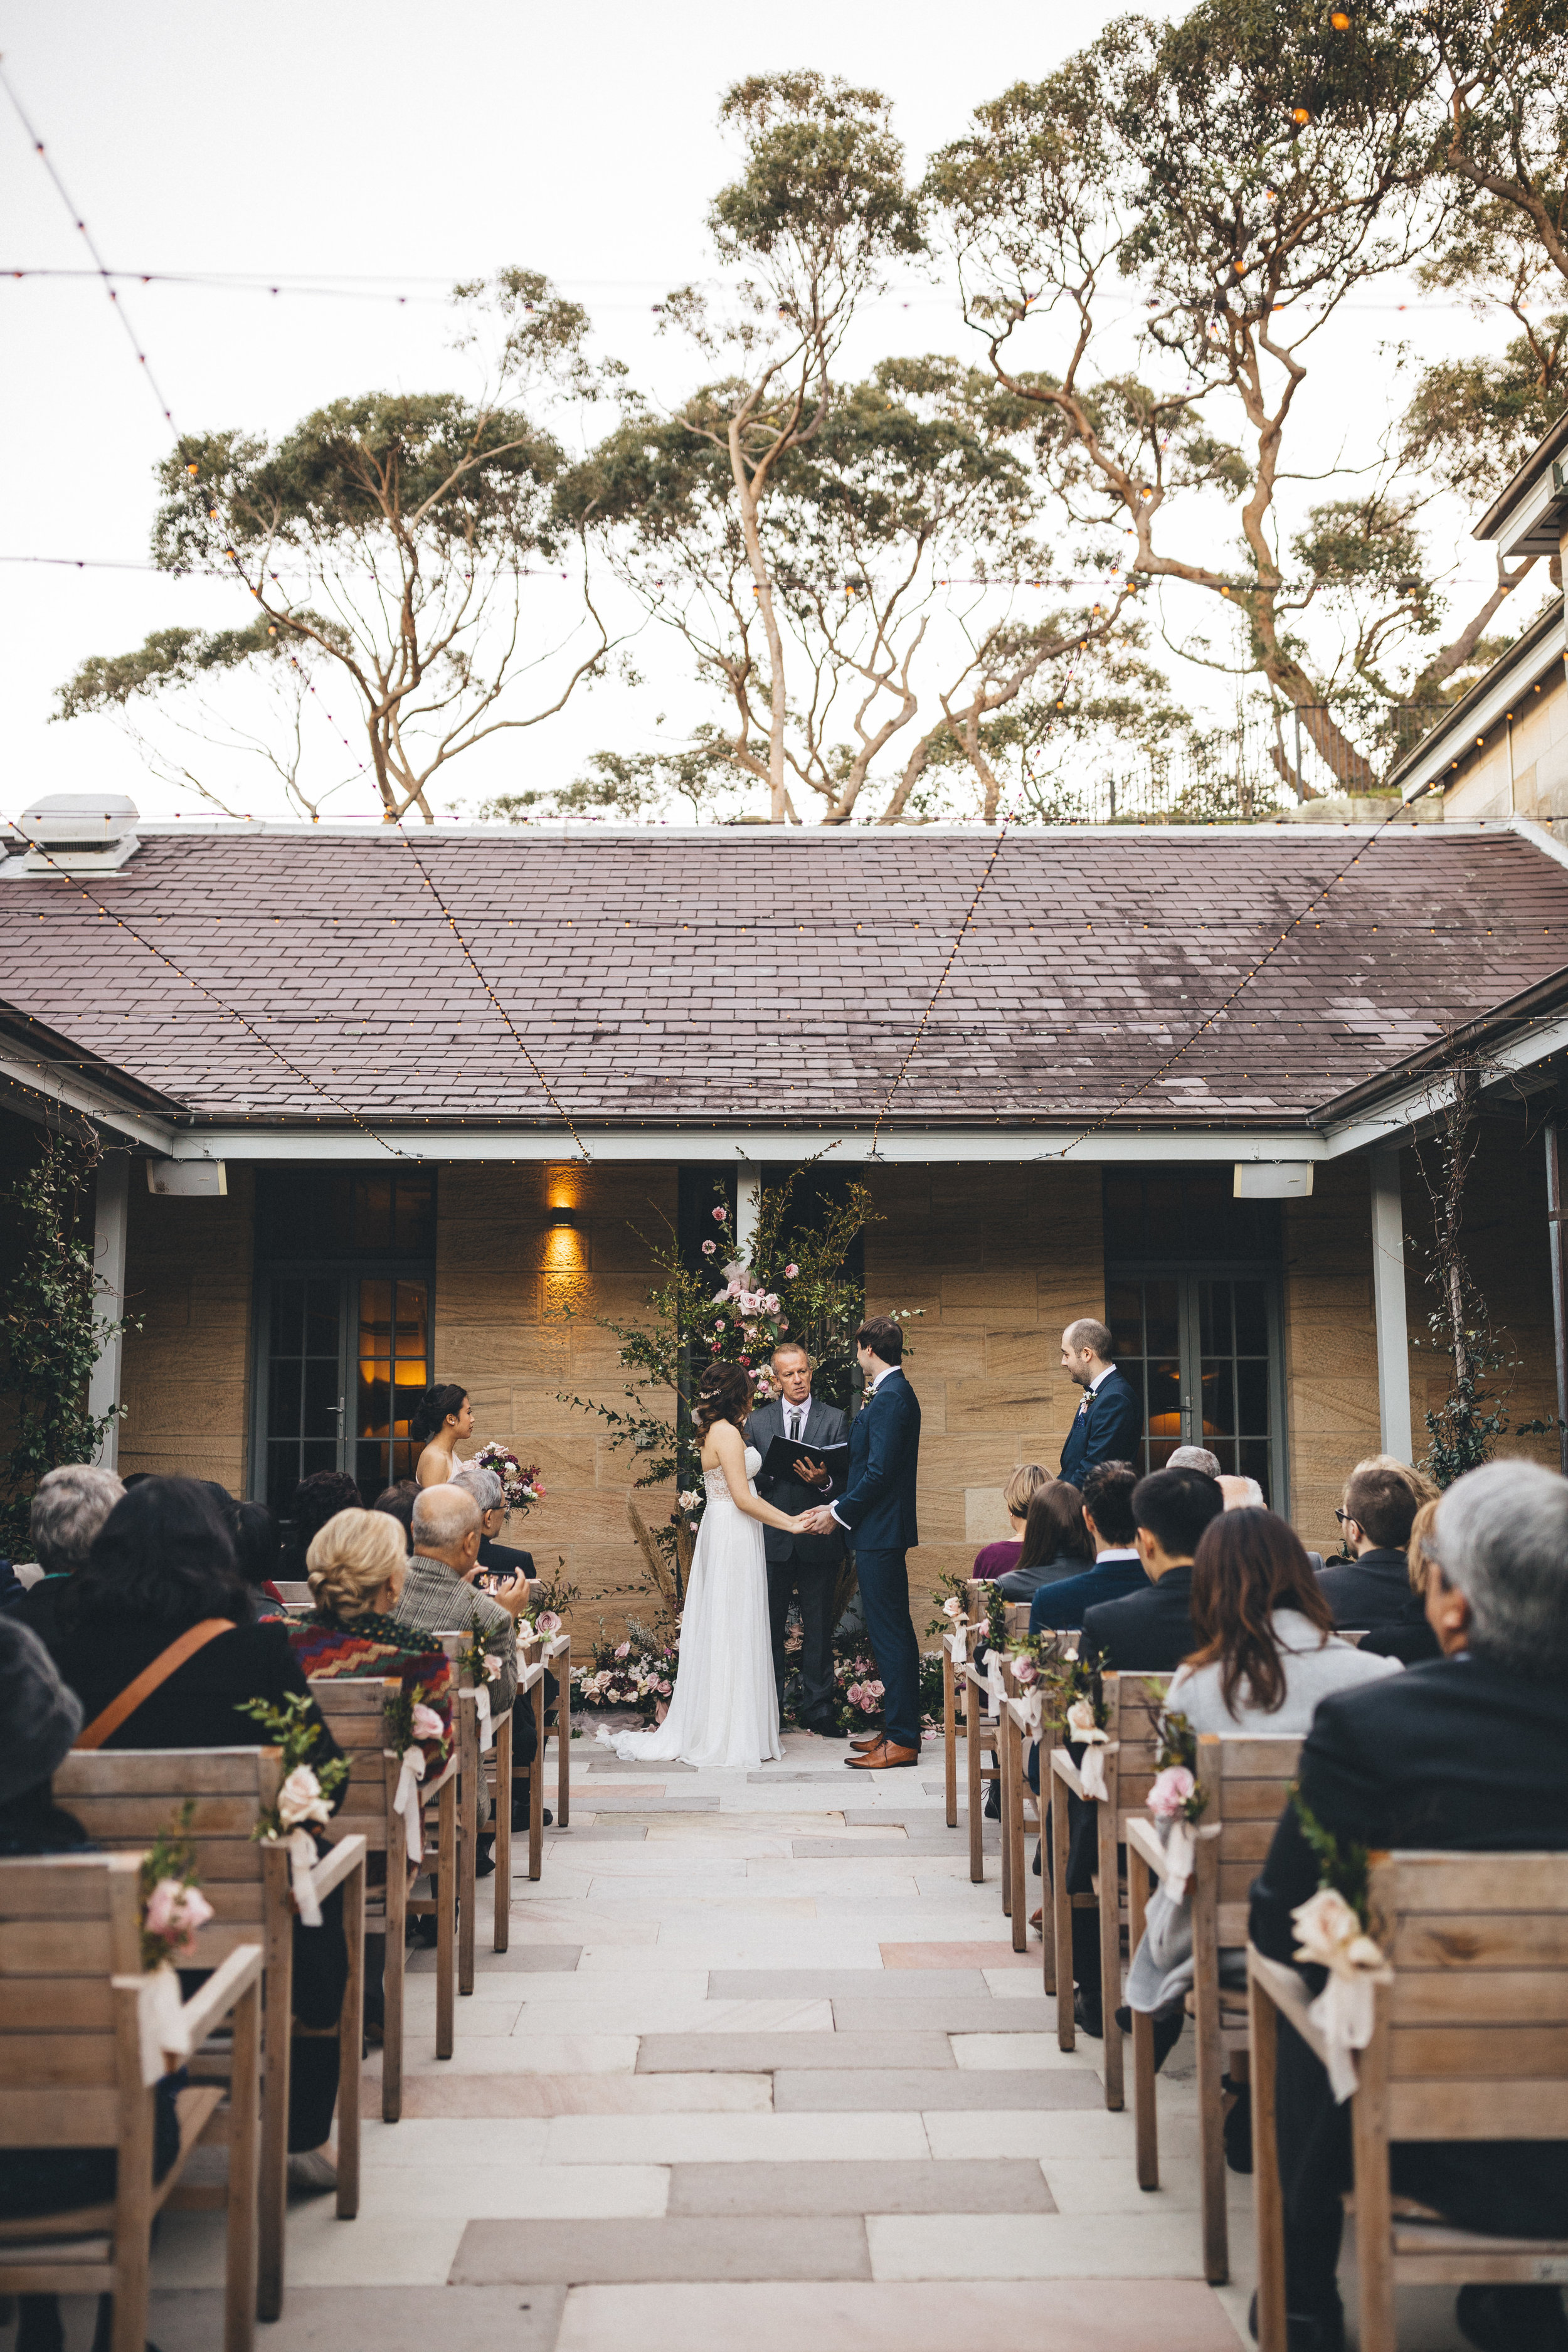 Ceremony chairs - Depending on the location, you might need to consider hiring chairs if the venue itself does not provide them.